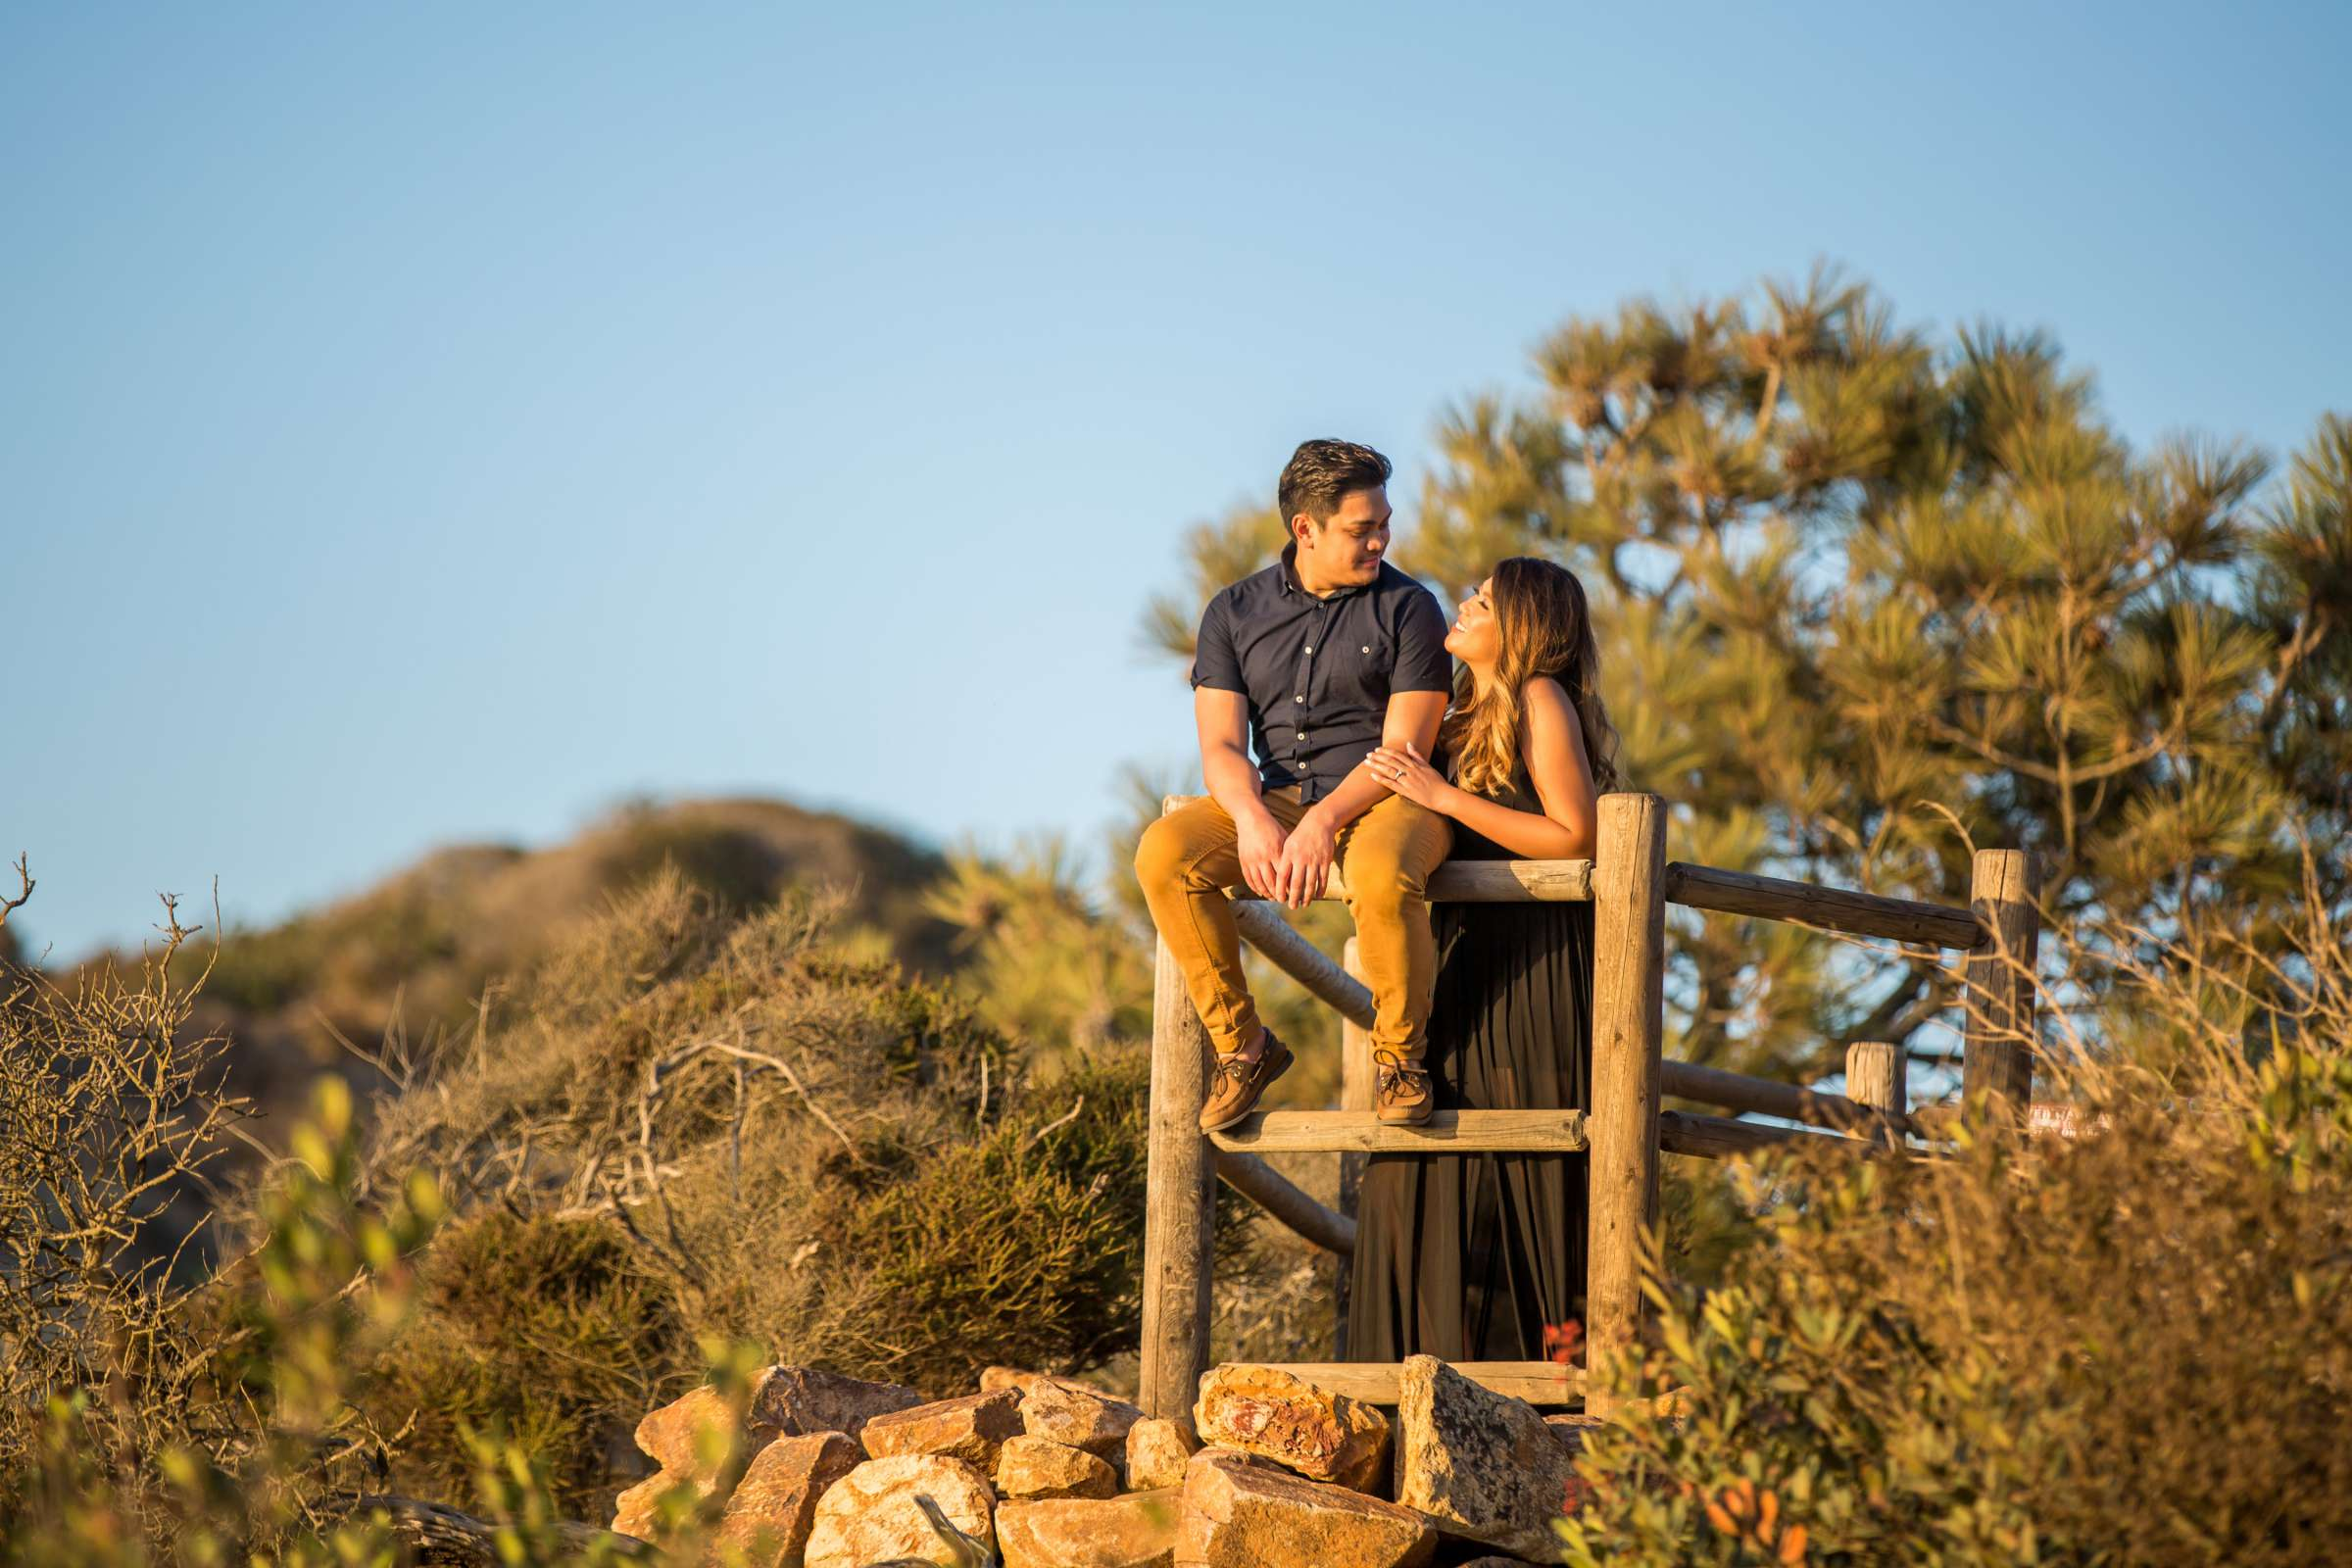 Engagement, Carmi and Loriel Engagement Photo #277865 by True Photography